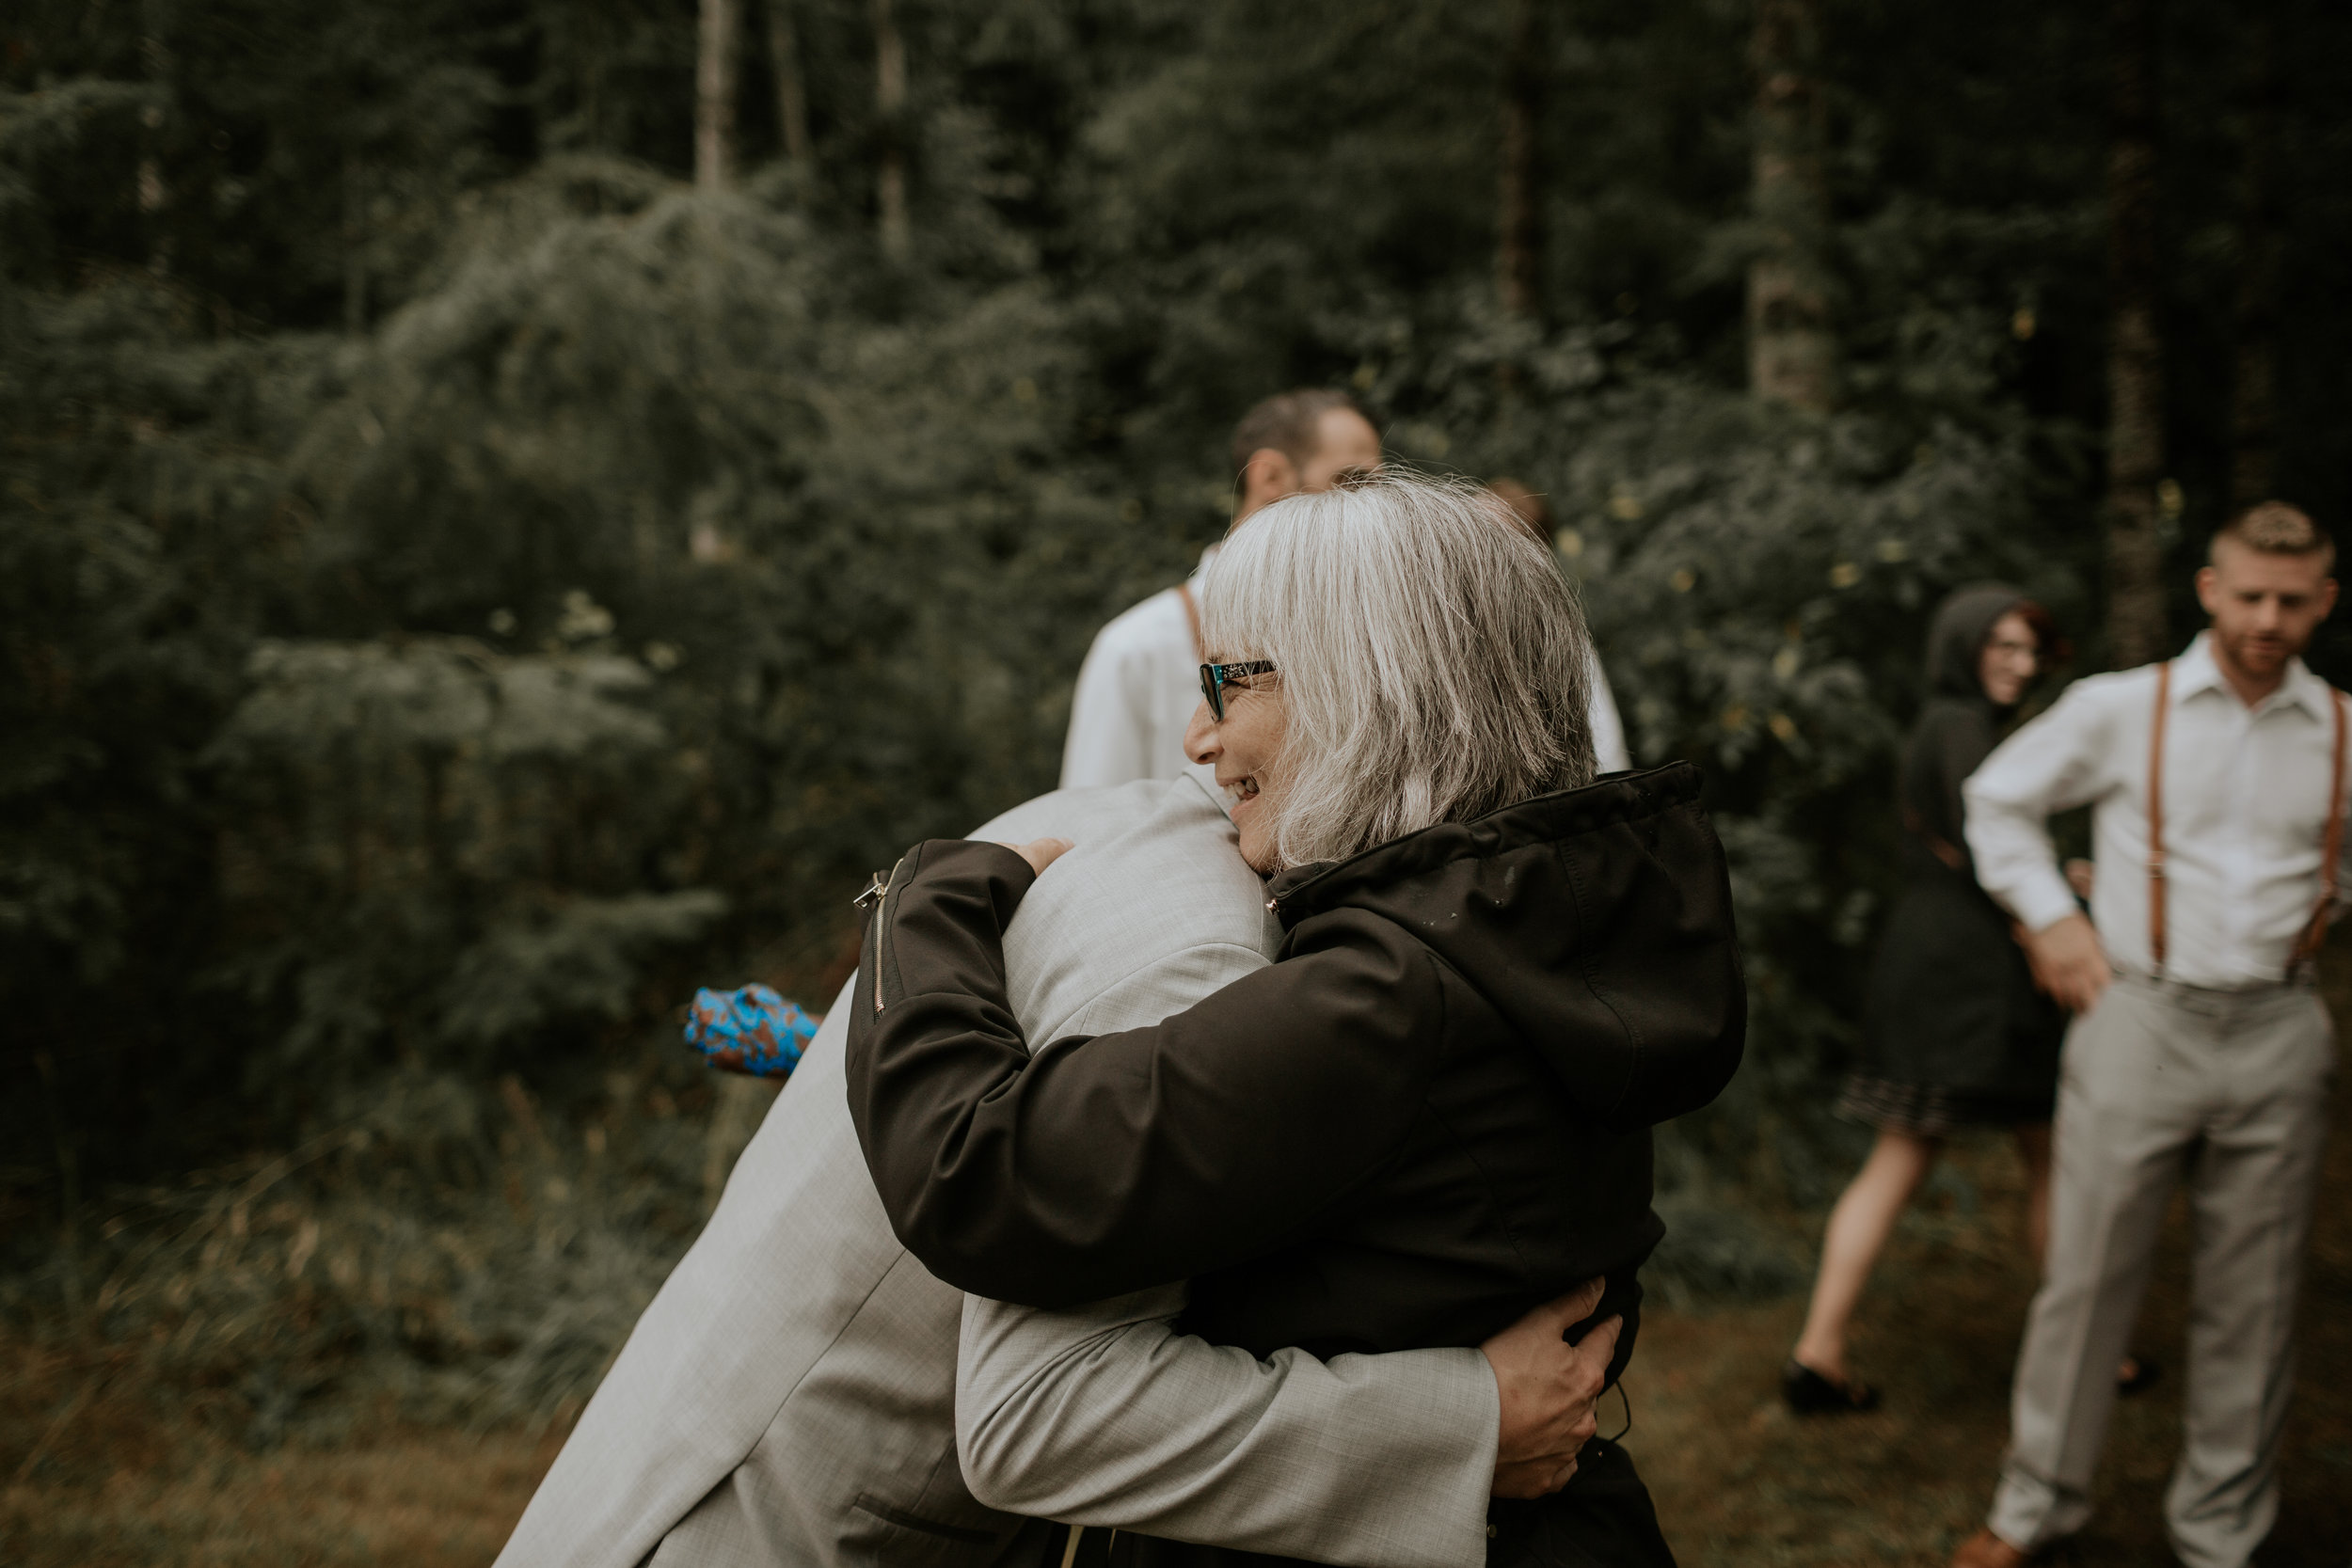 Port-Angeles-elopement-wedding-pnw-olympic-peninsula-photographer-portrait-kayladawnphoto-kayla-dawn-photography-olympic-national-park-37.jpg